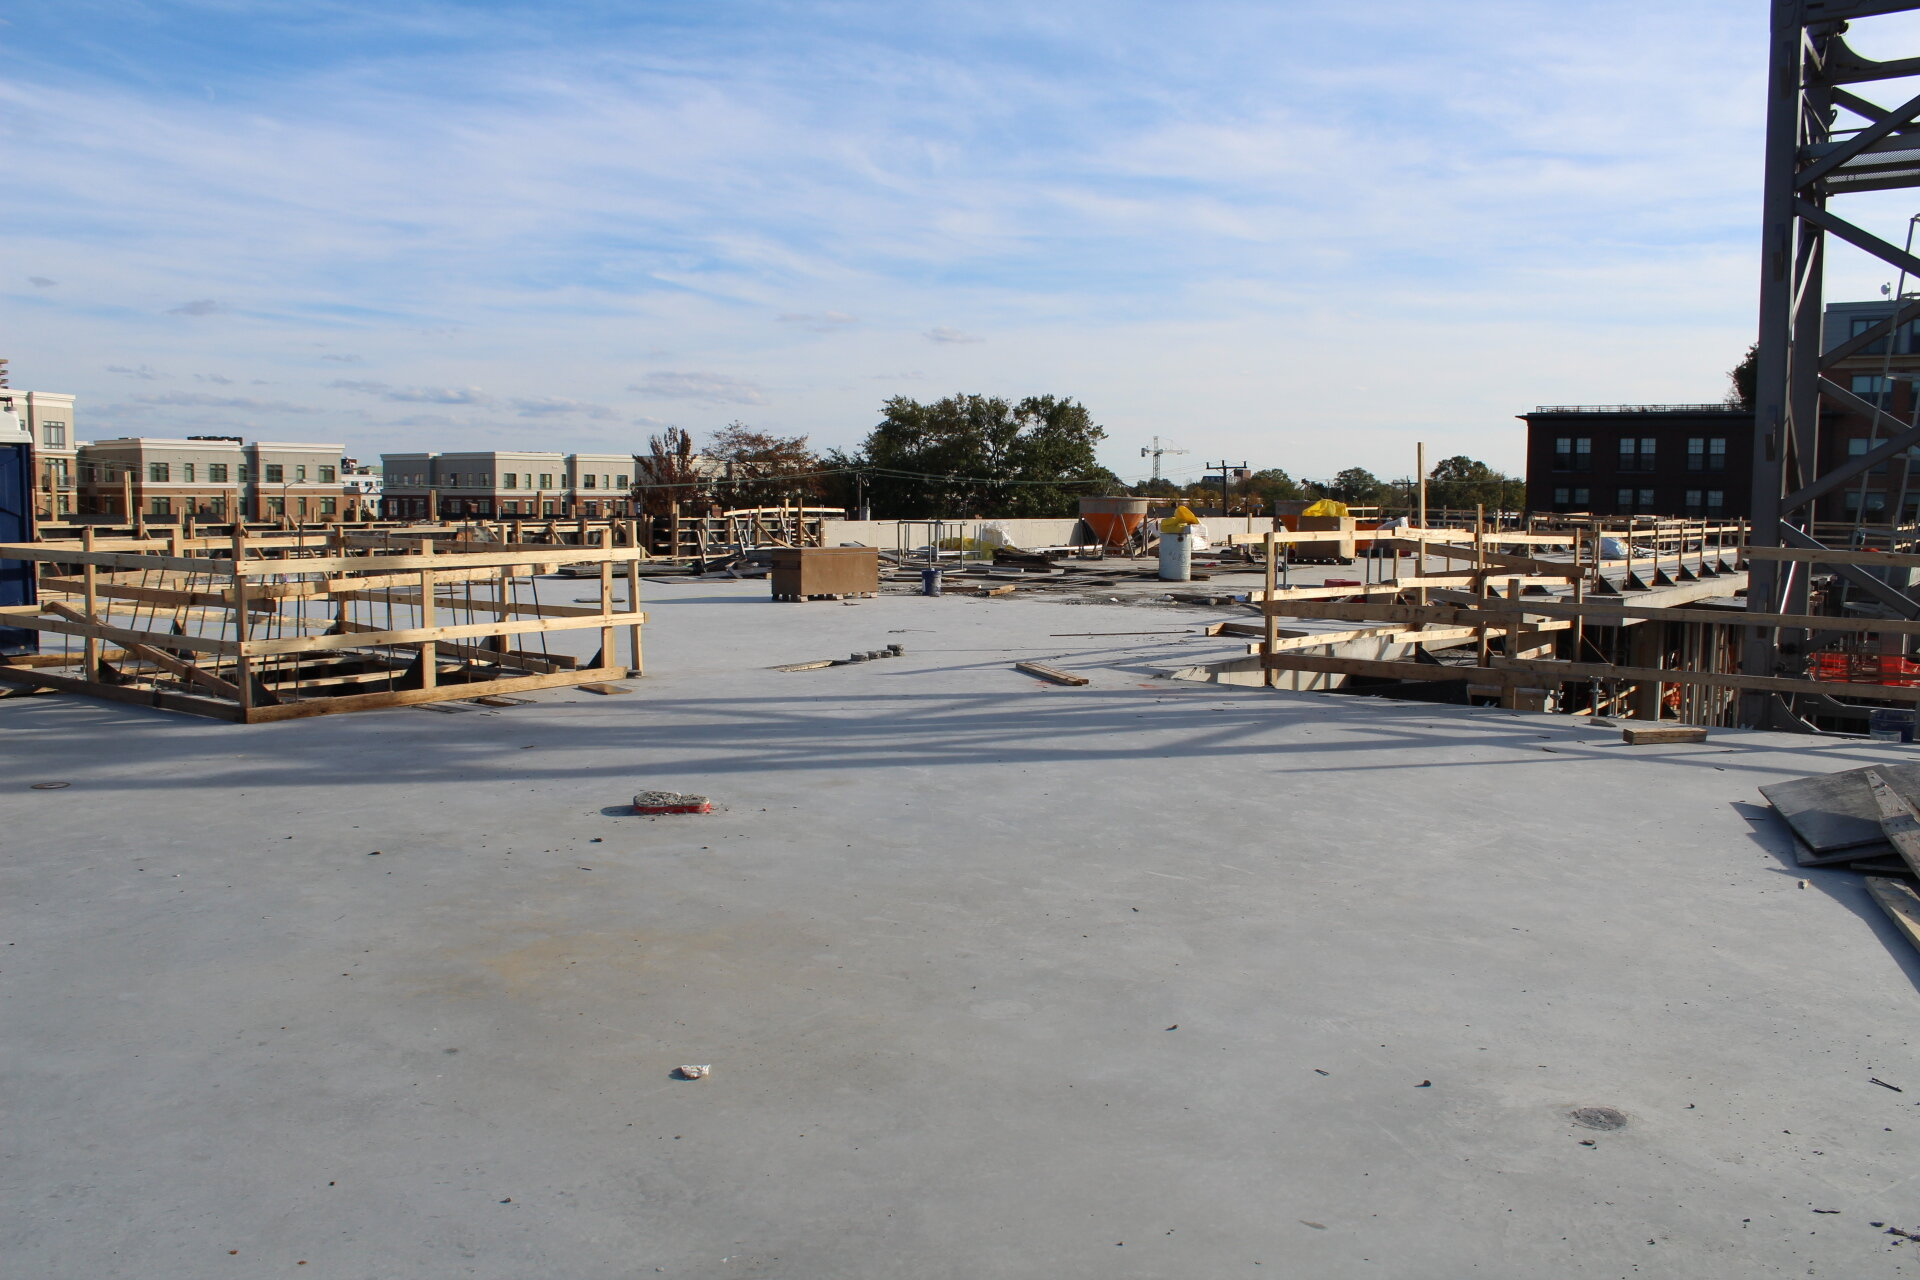 The third and top floor - for now. These sweeping views of Alexandria will be even better when all six floors are completed.